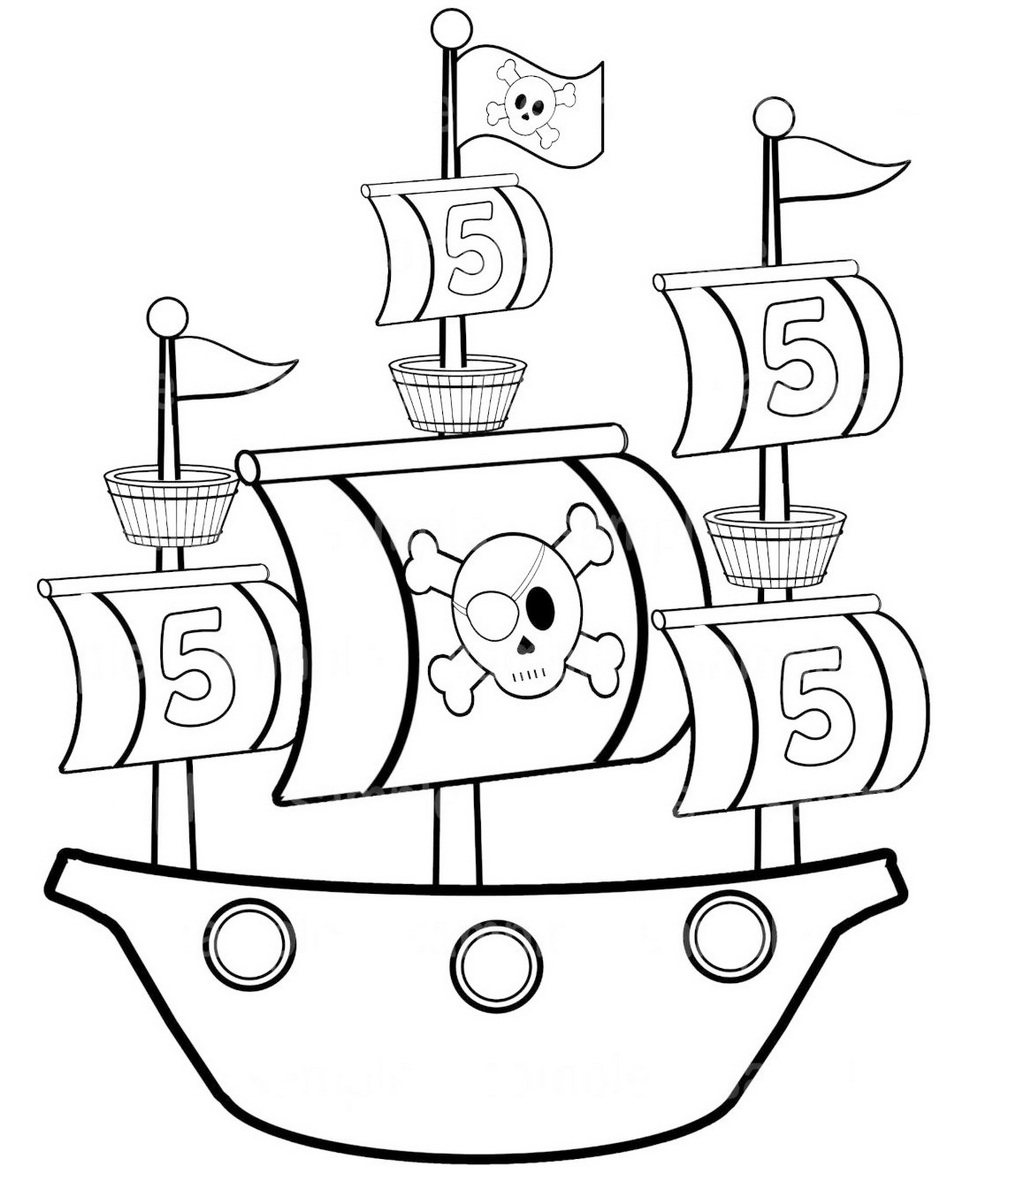 boat coloring sheet simple pirate ship coloring pages for preschool boat coloring sheet